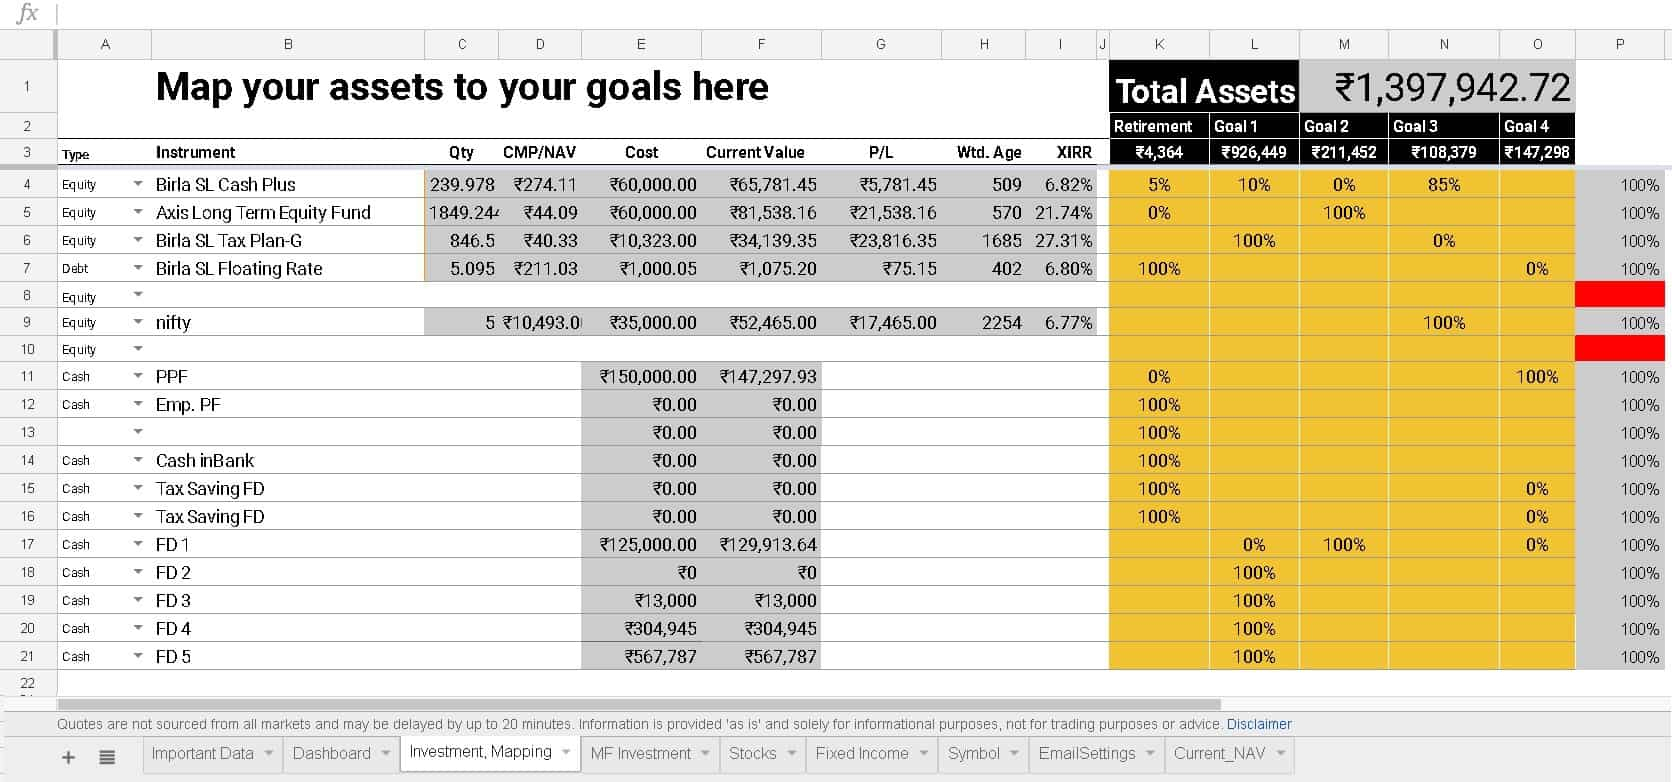 Dividend Spreadsheet Templates in Google Spreadsheet Portfoliocker For Stocks And Mutual Funds Sheet